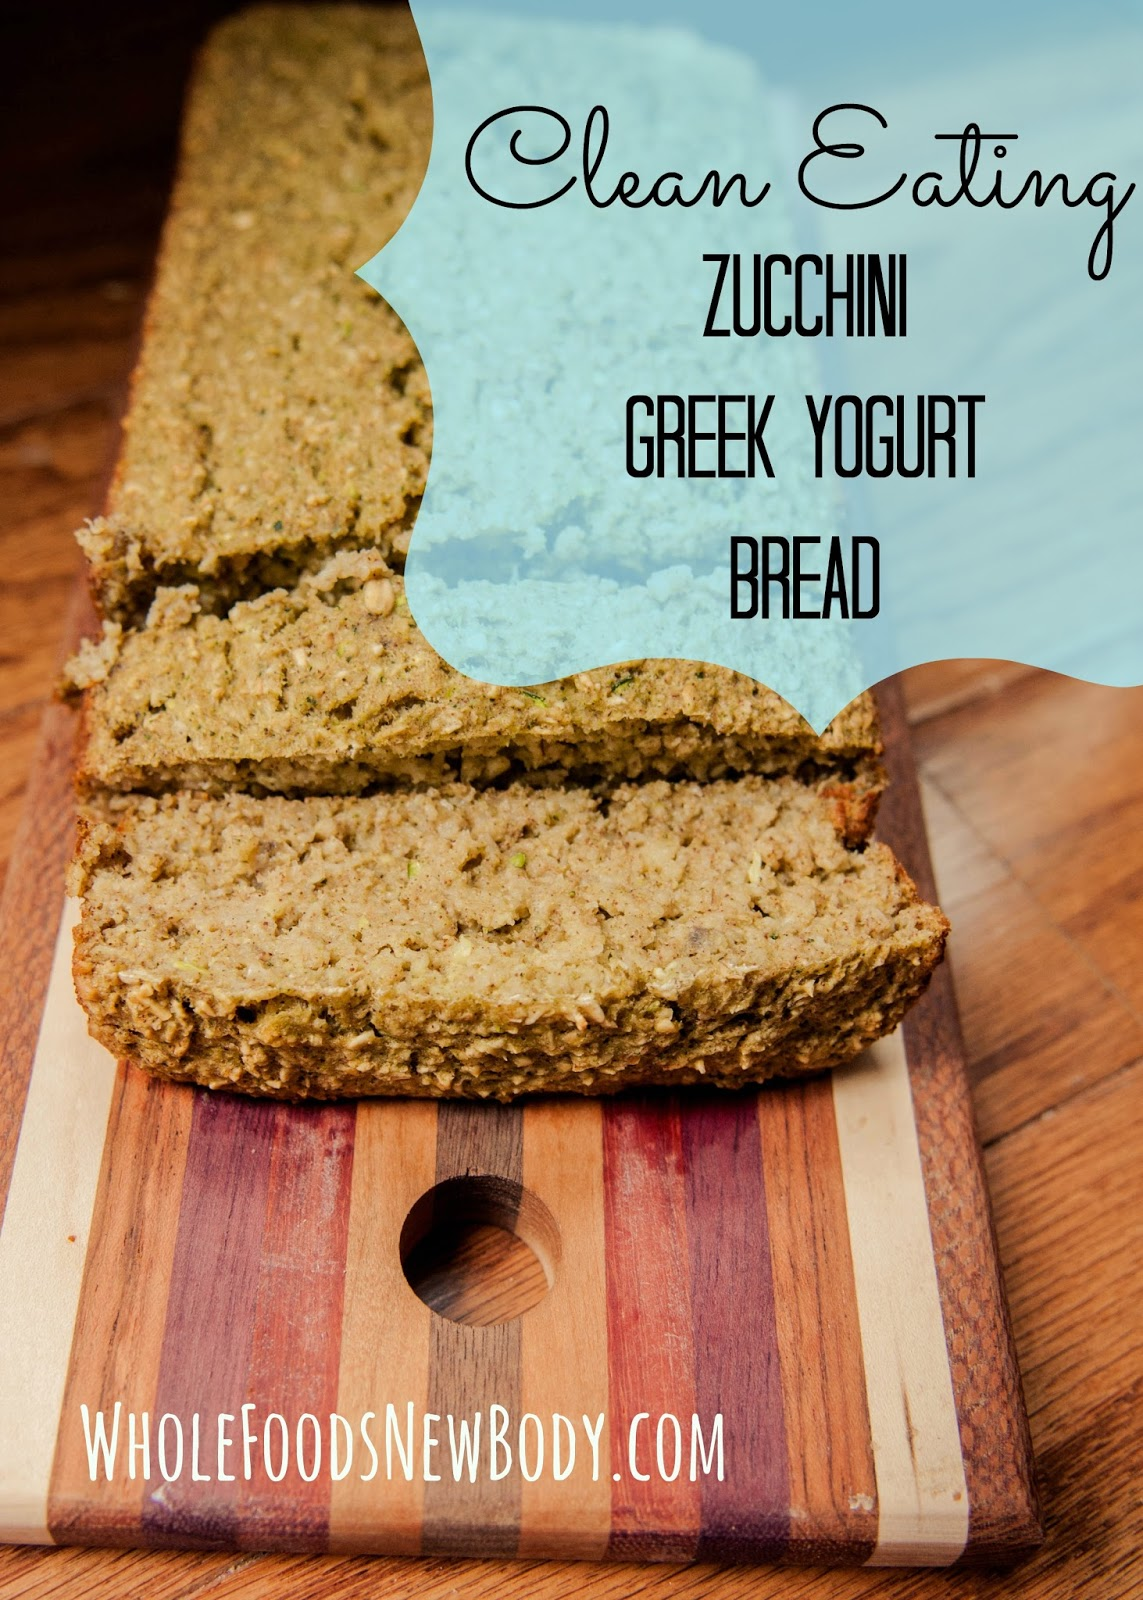 Whole foodsw body clean eating zucchini bread clean eating zucchini bread forumfinder Gallery